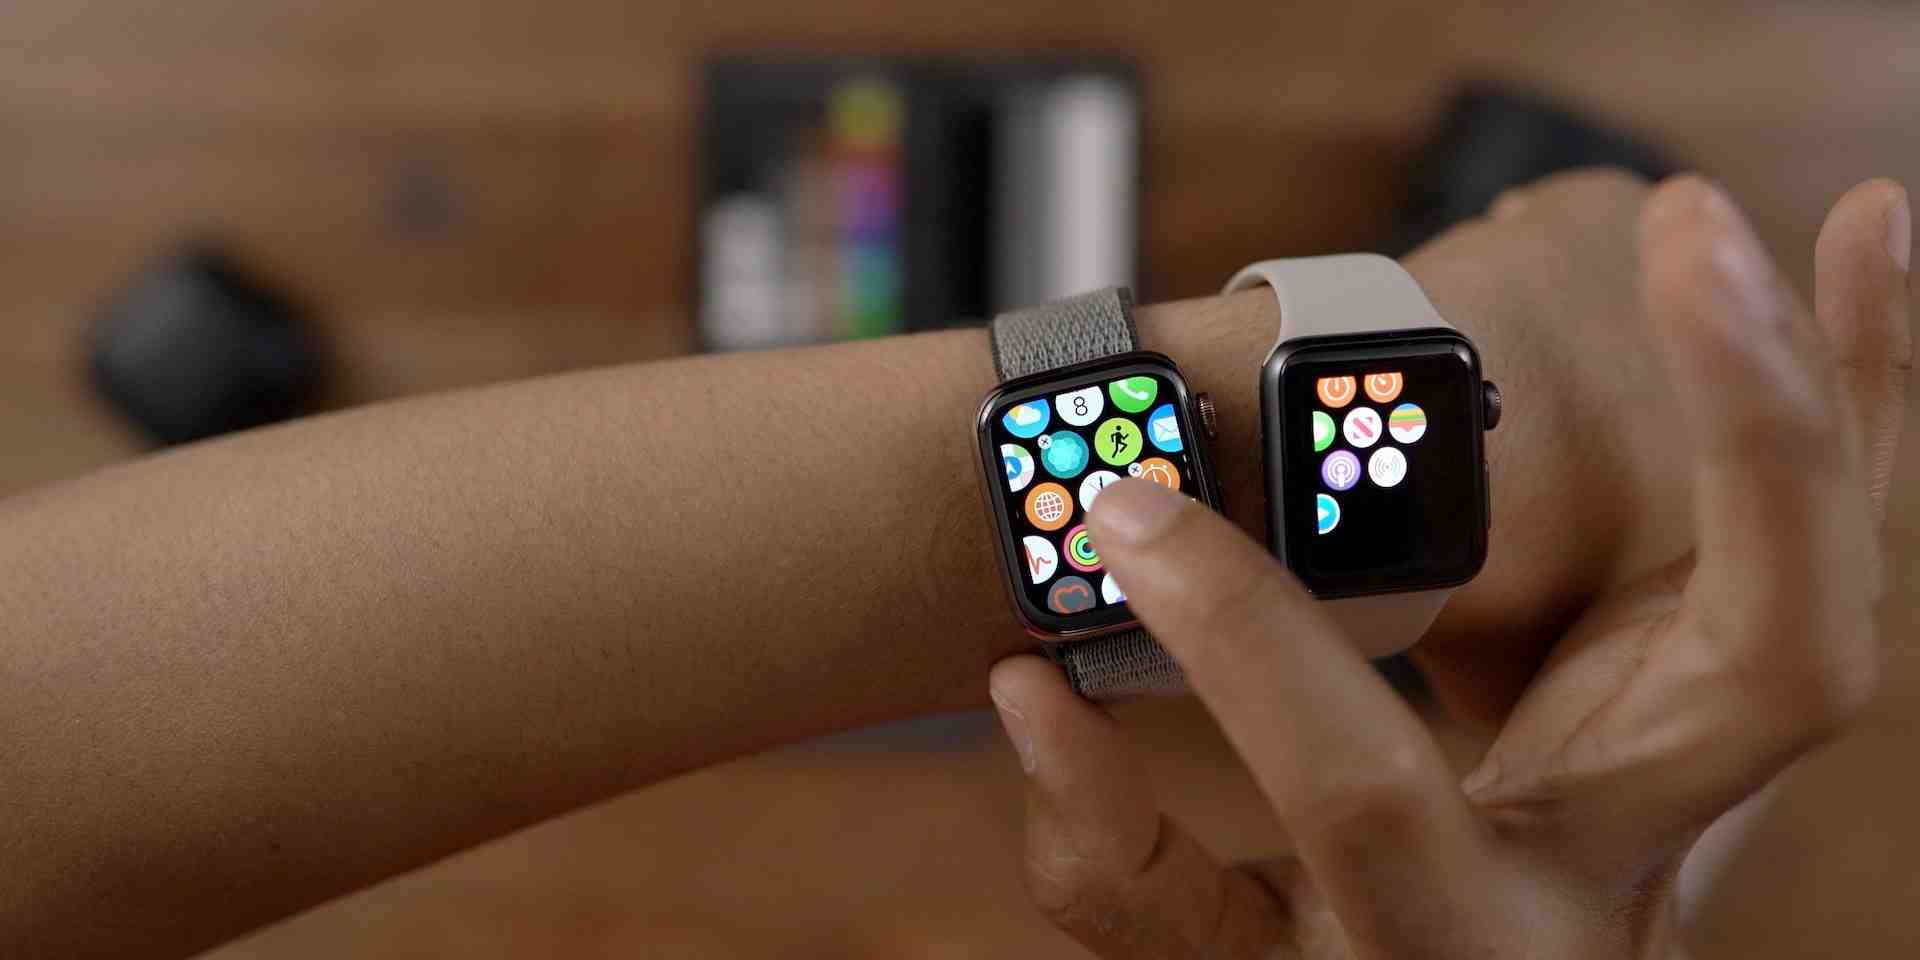 Why can't I delete apps on my Apple Watch?